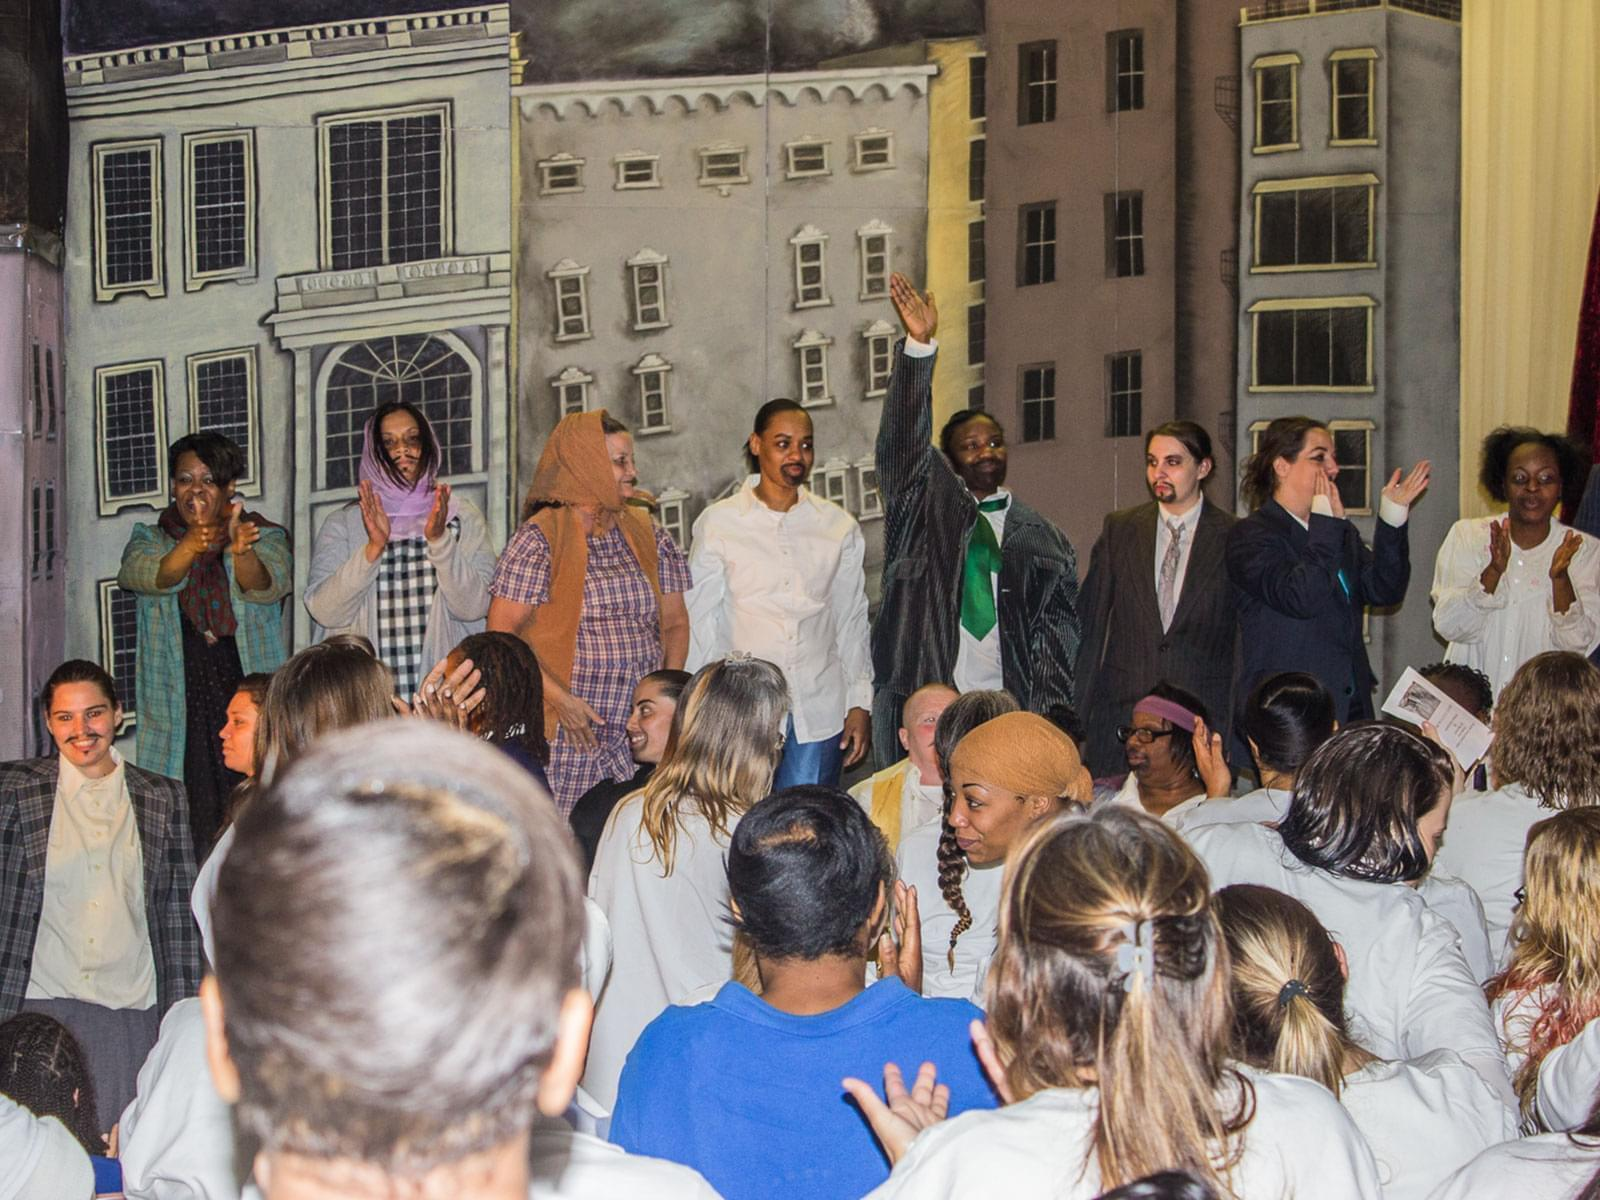 Inmates at the Decatur Correctional Center give a standing ovation to the cast of Macbeth on opening night, Wednesday, April 22